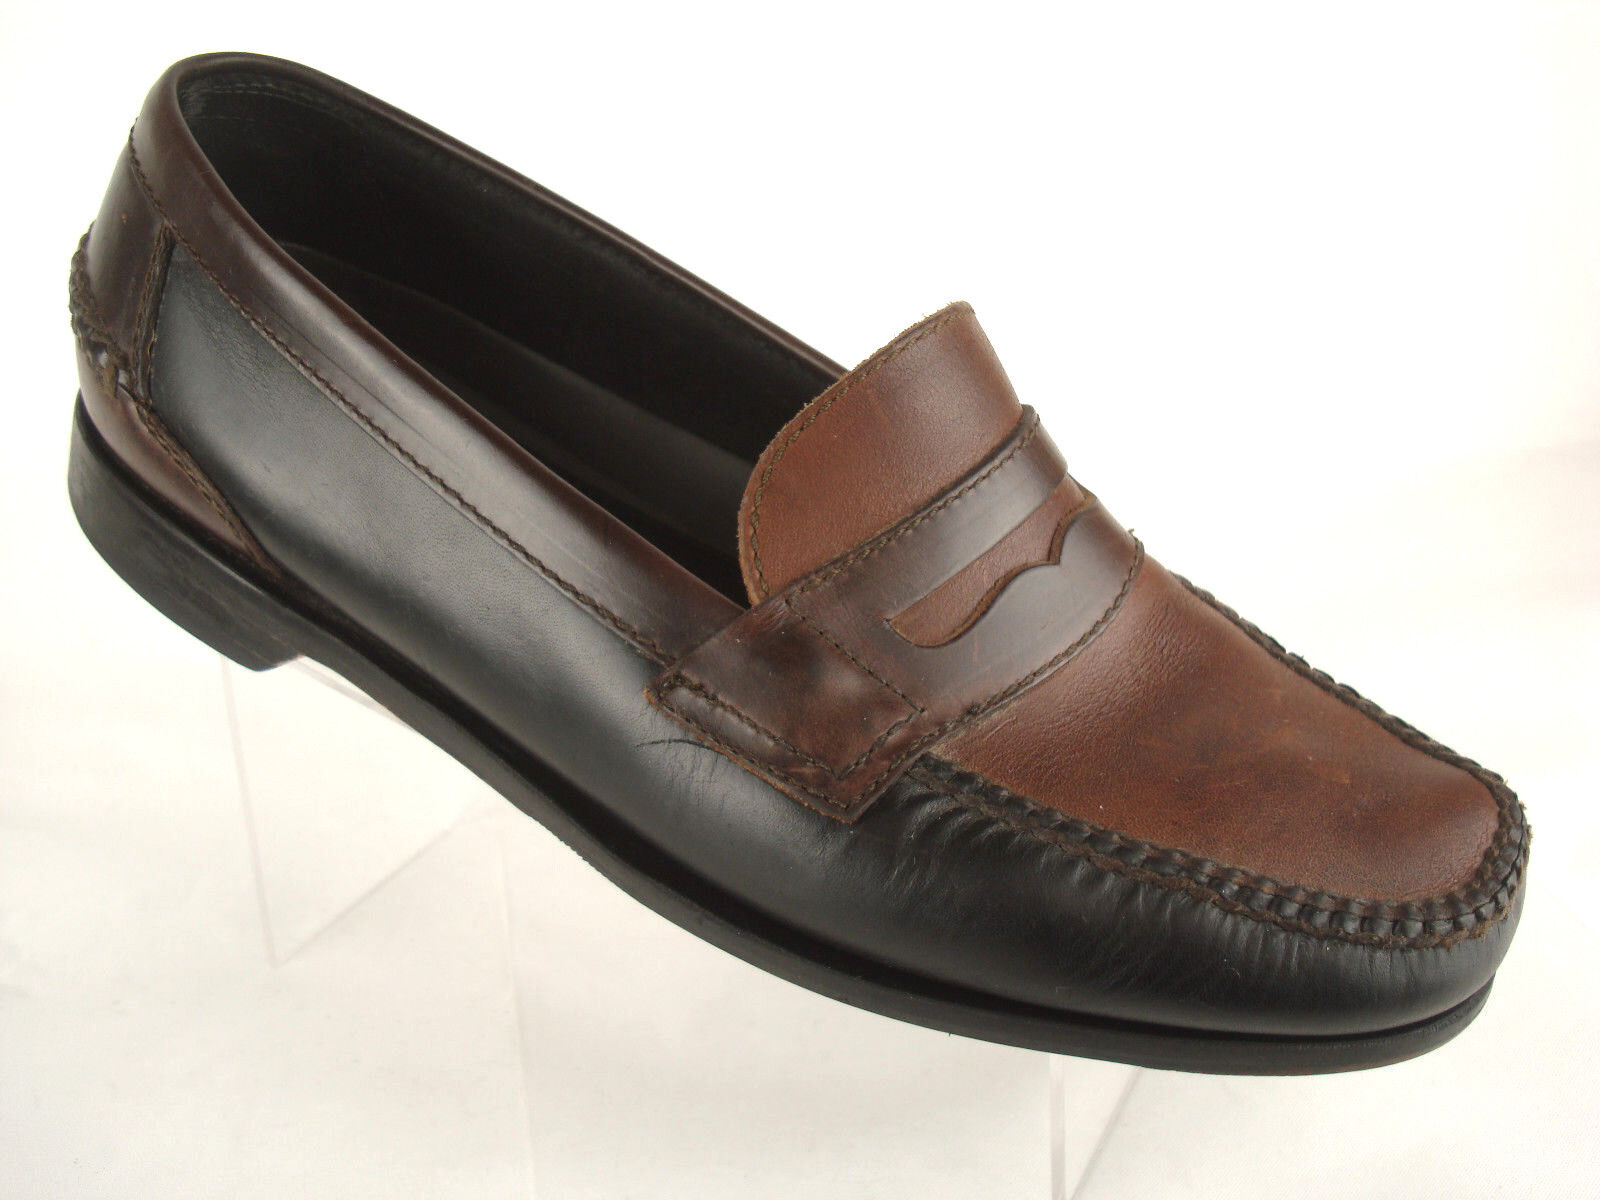 Johnston Murphy Passport Leather Penny Loafer Two-Tone Brown Mens Sz 11M